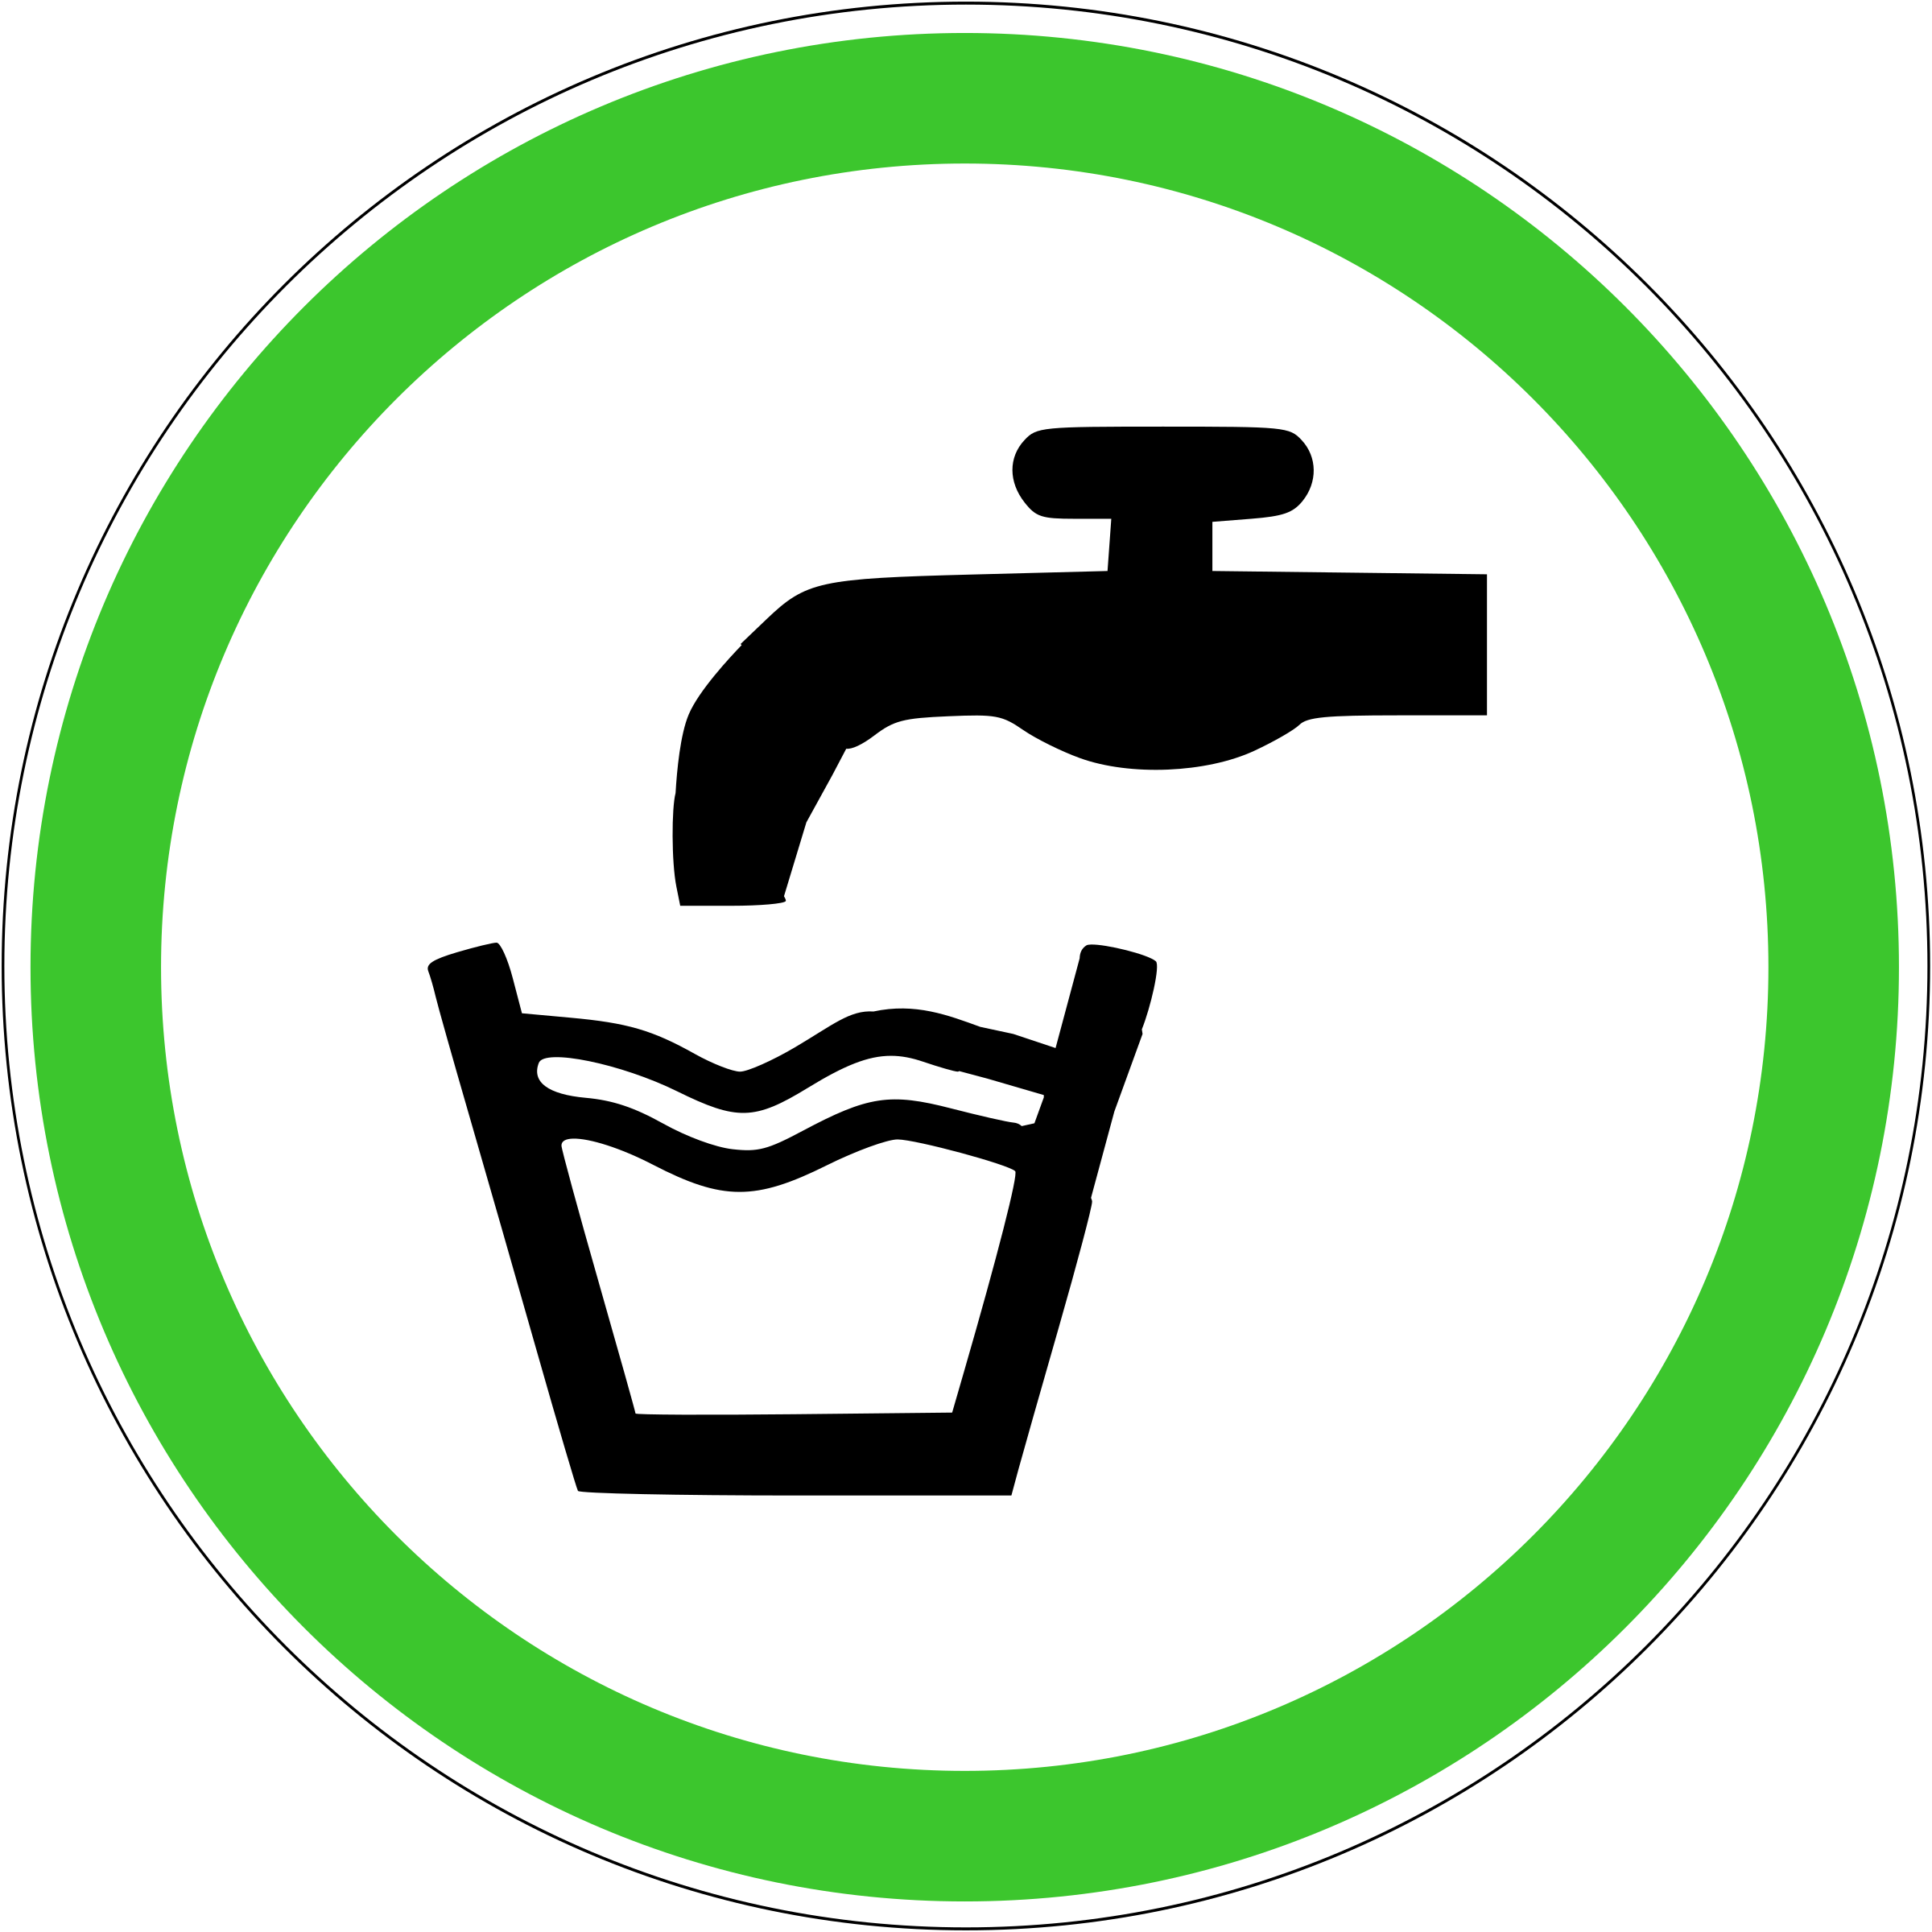 Water clipart potable water. Yes big image png